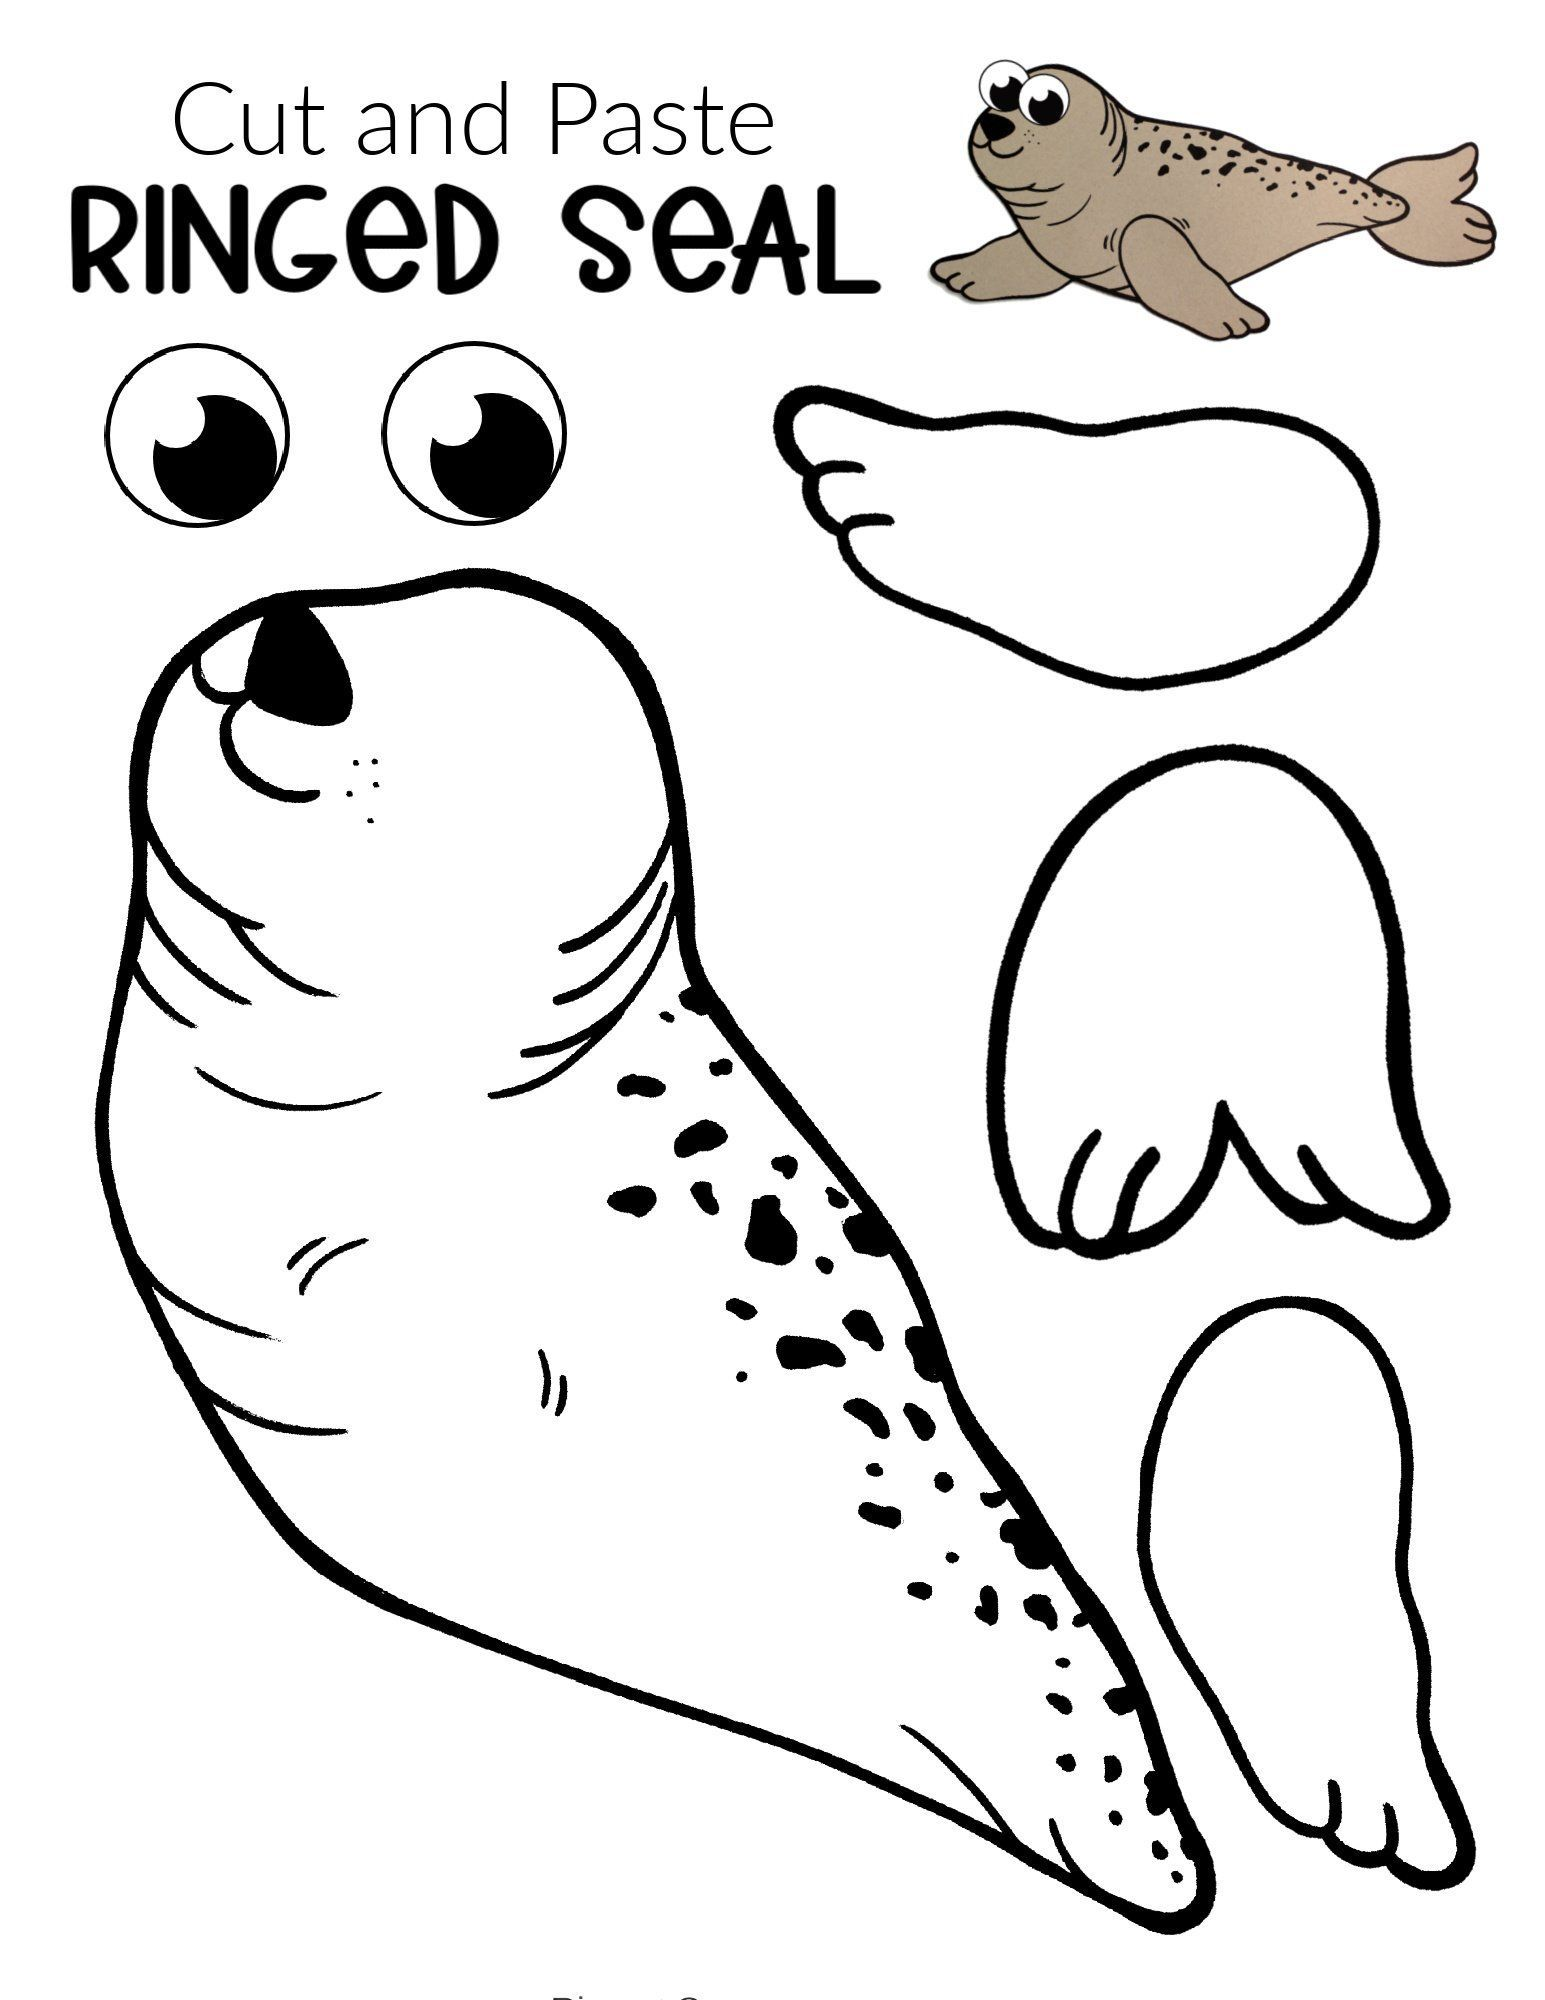 Easy Diy Arctic Seal Craft For Kids With Free Template In 2021 Arctic Animals Preschool Arctic Animals Preschool Activities Seal Crafts For Kids [ 2000 x 1545 Pixel ]